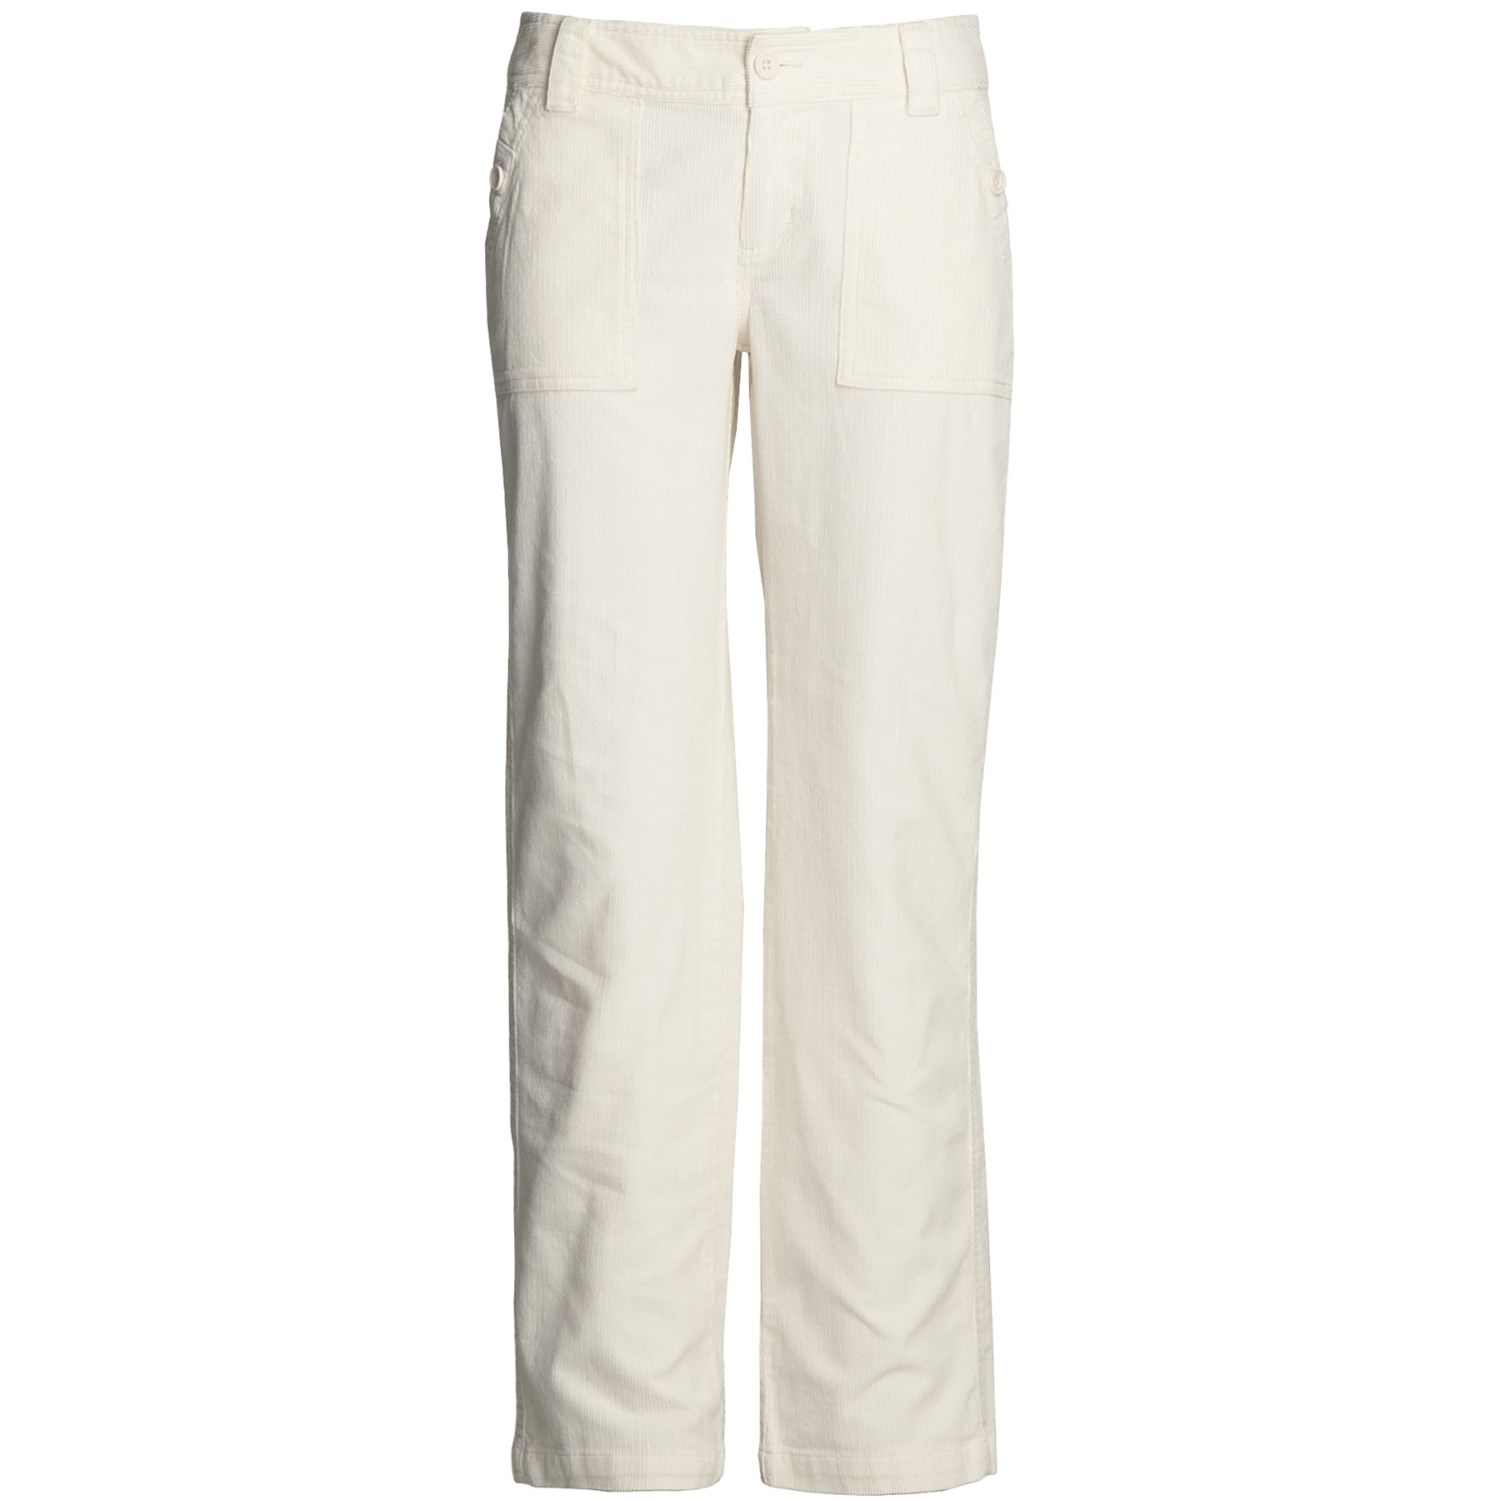 Creative Munaska White Leather Pants  Leather4sure Leather Pants